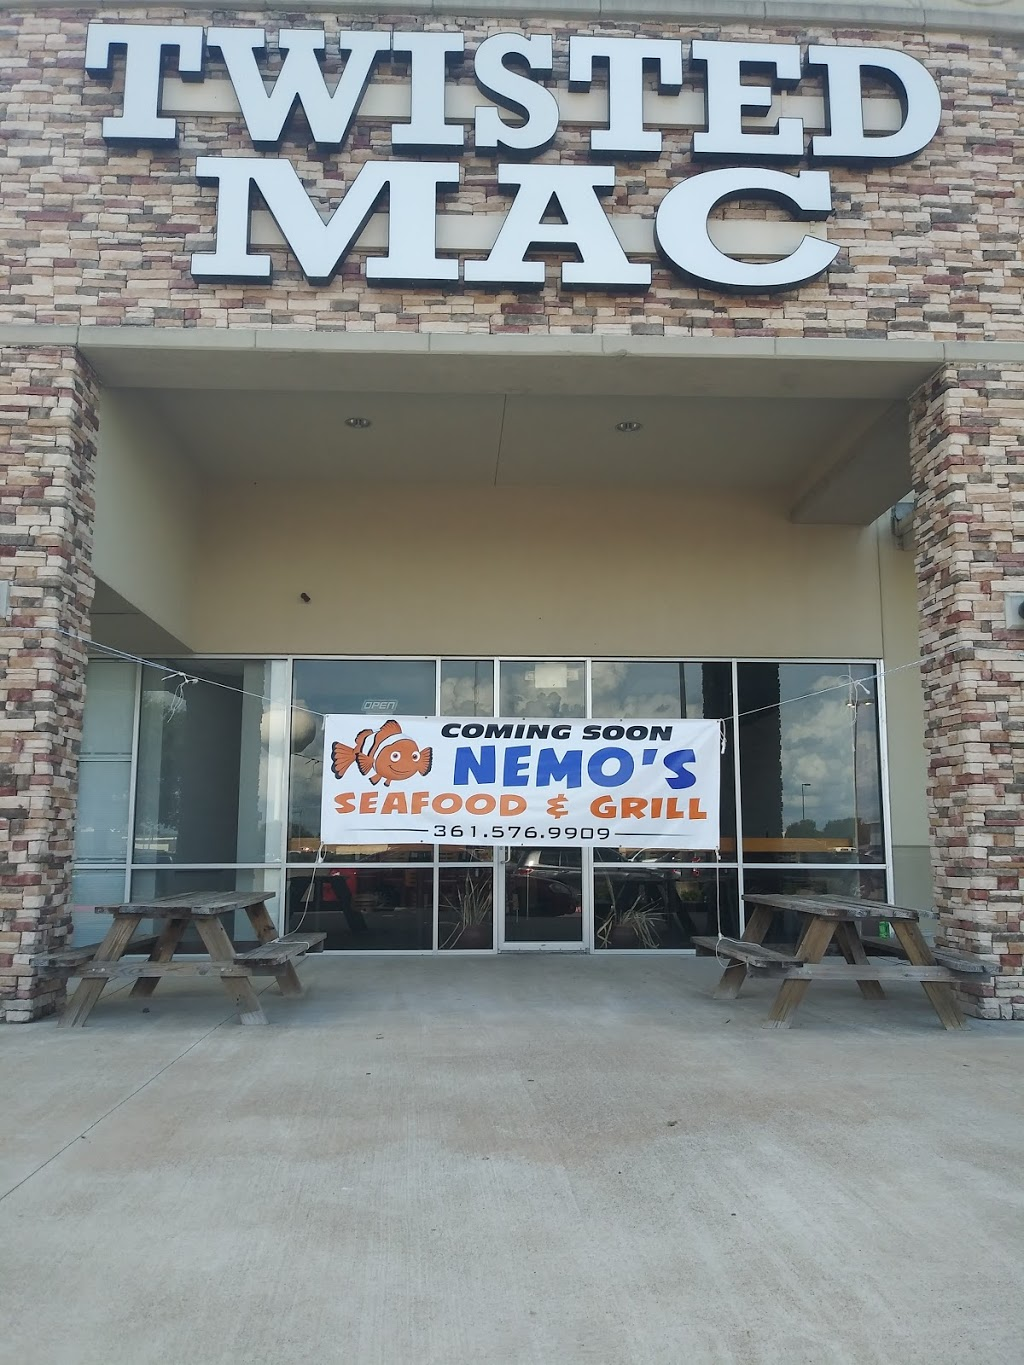 Nemos Seafood and Grill | restaurant | 8901 N Navarro St, Victoria, TX 77904, USA | 3615769909 OR +1 361-576-9909